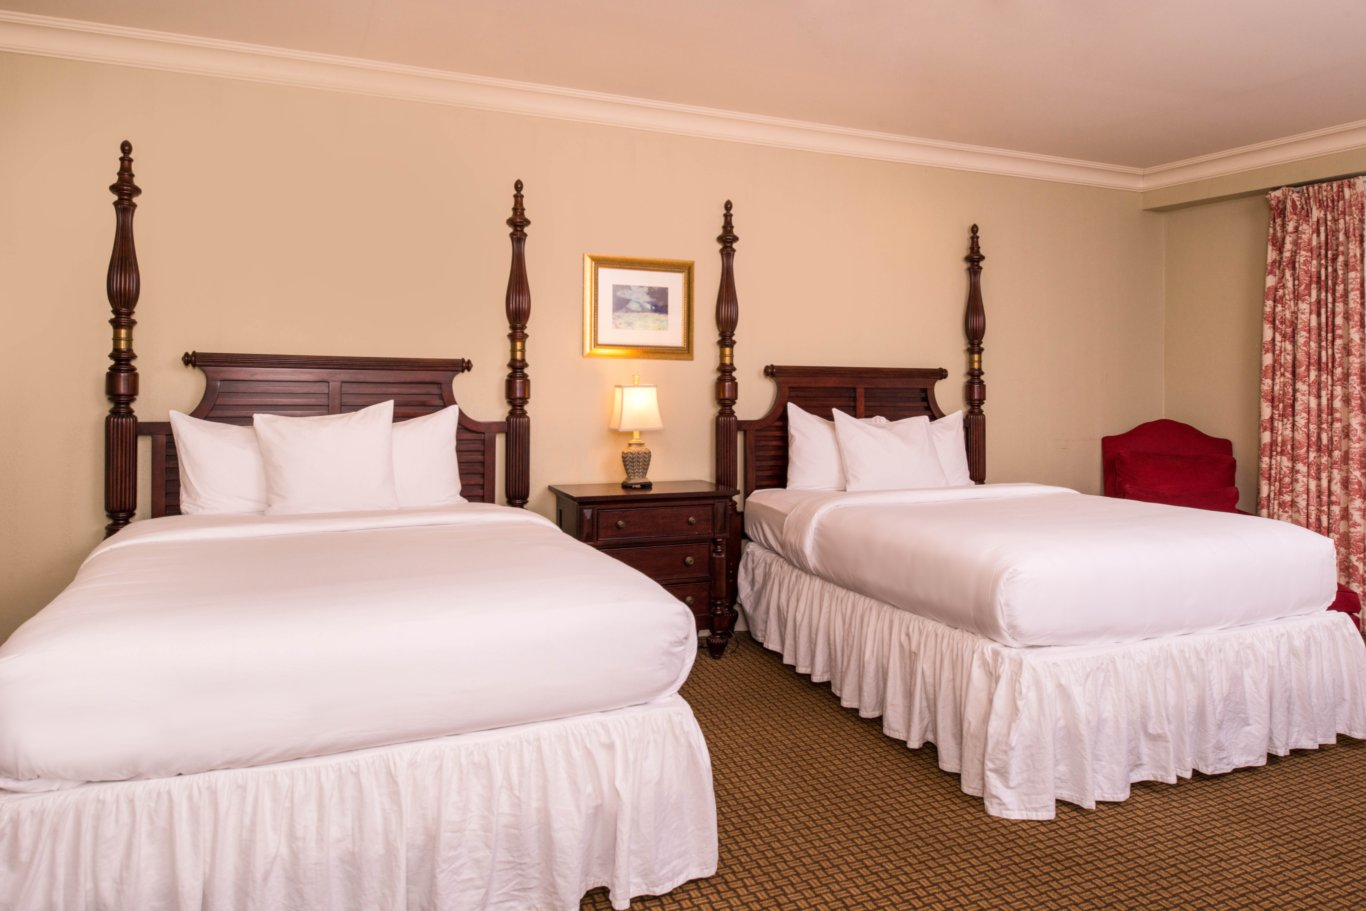 Niagara on the lake packages - Lodging and Hotels